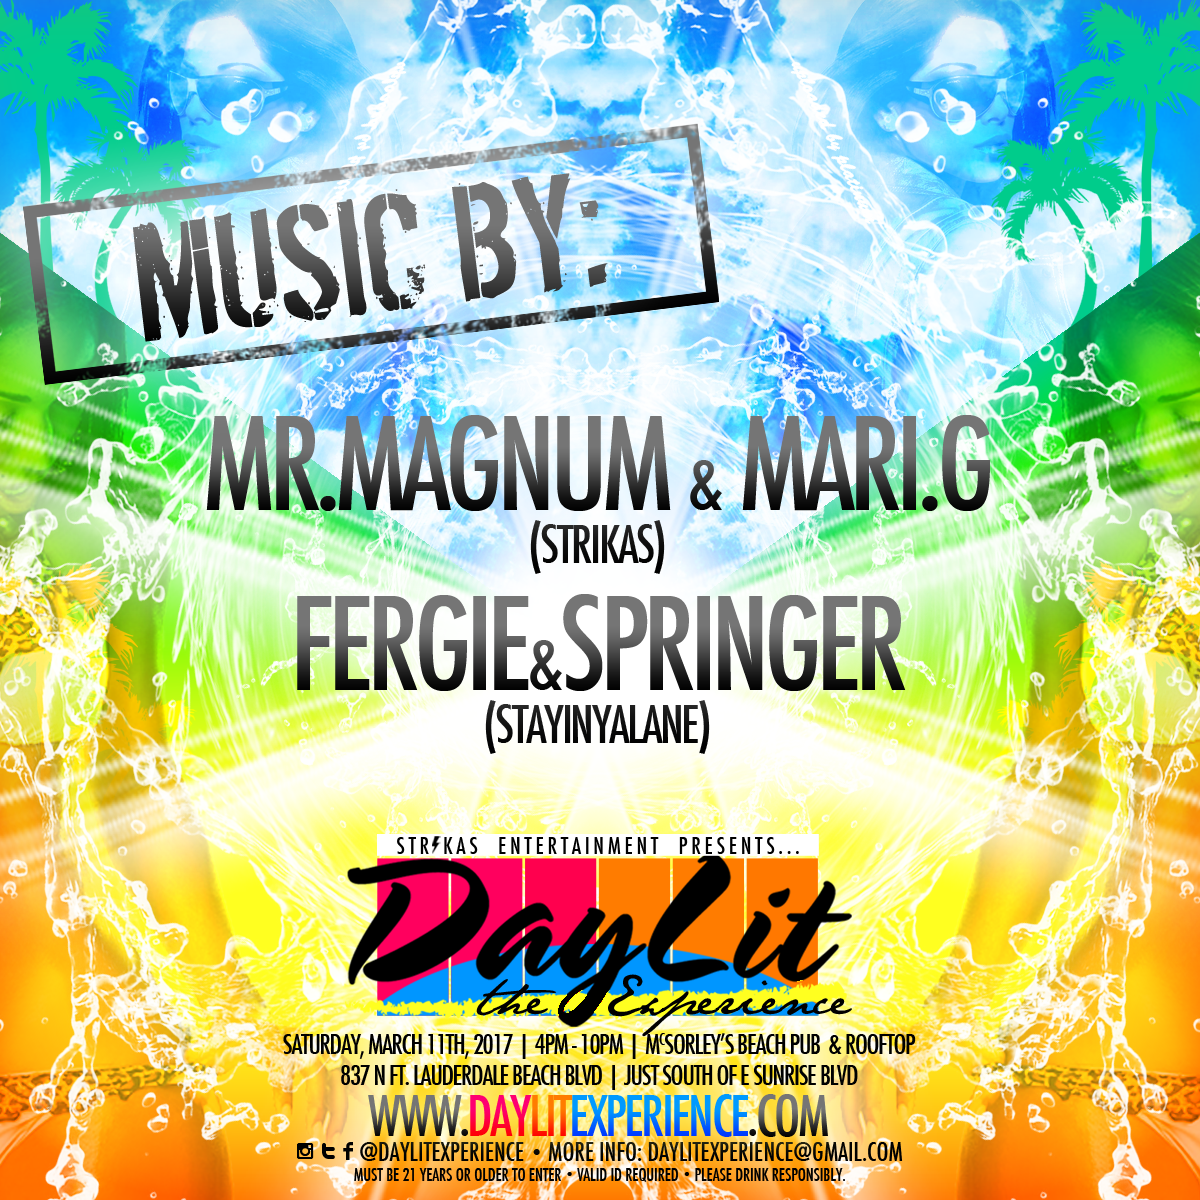 DayLit - The Experience - Promo Mix for March 11th, 2017 with @MariGInTheMix